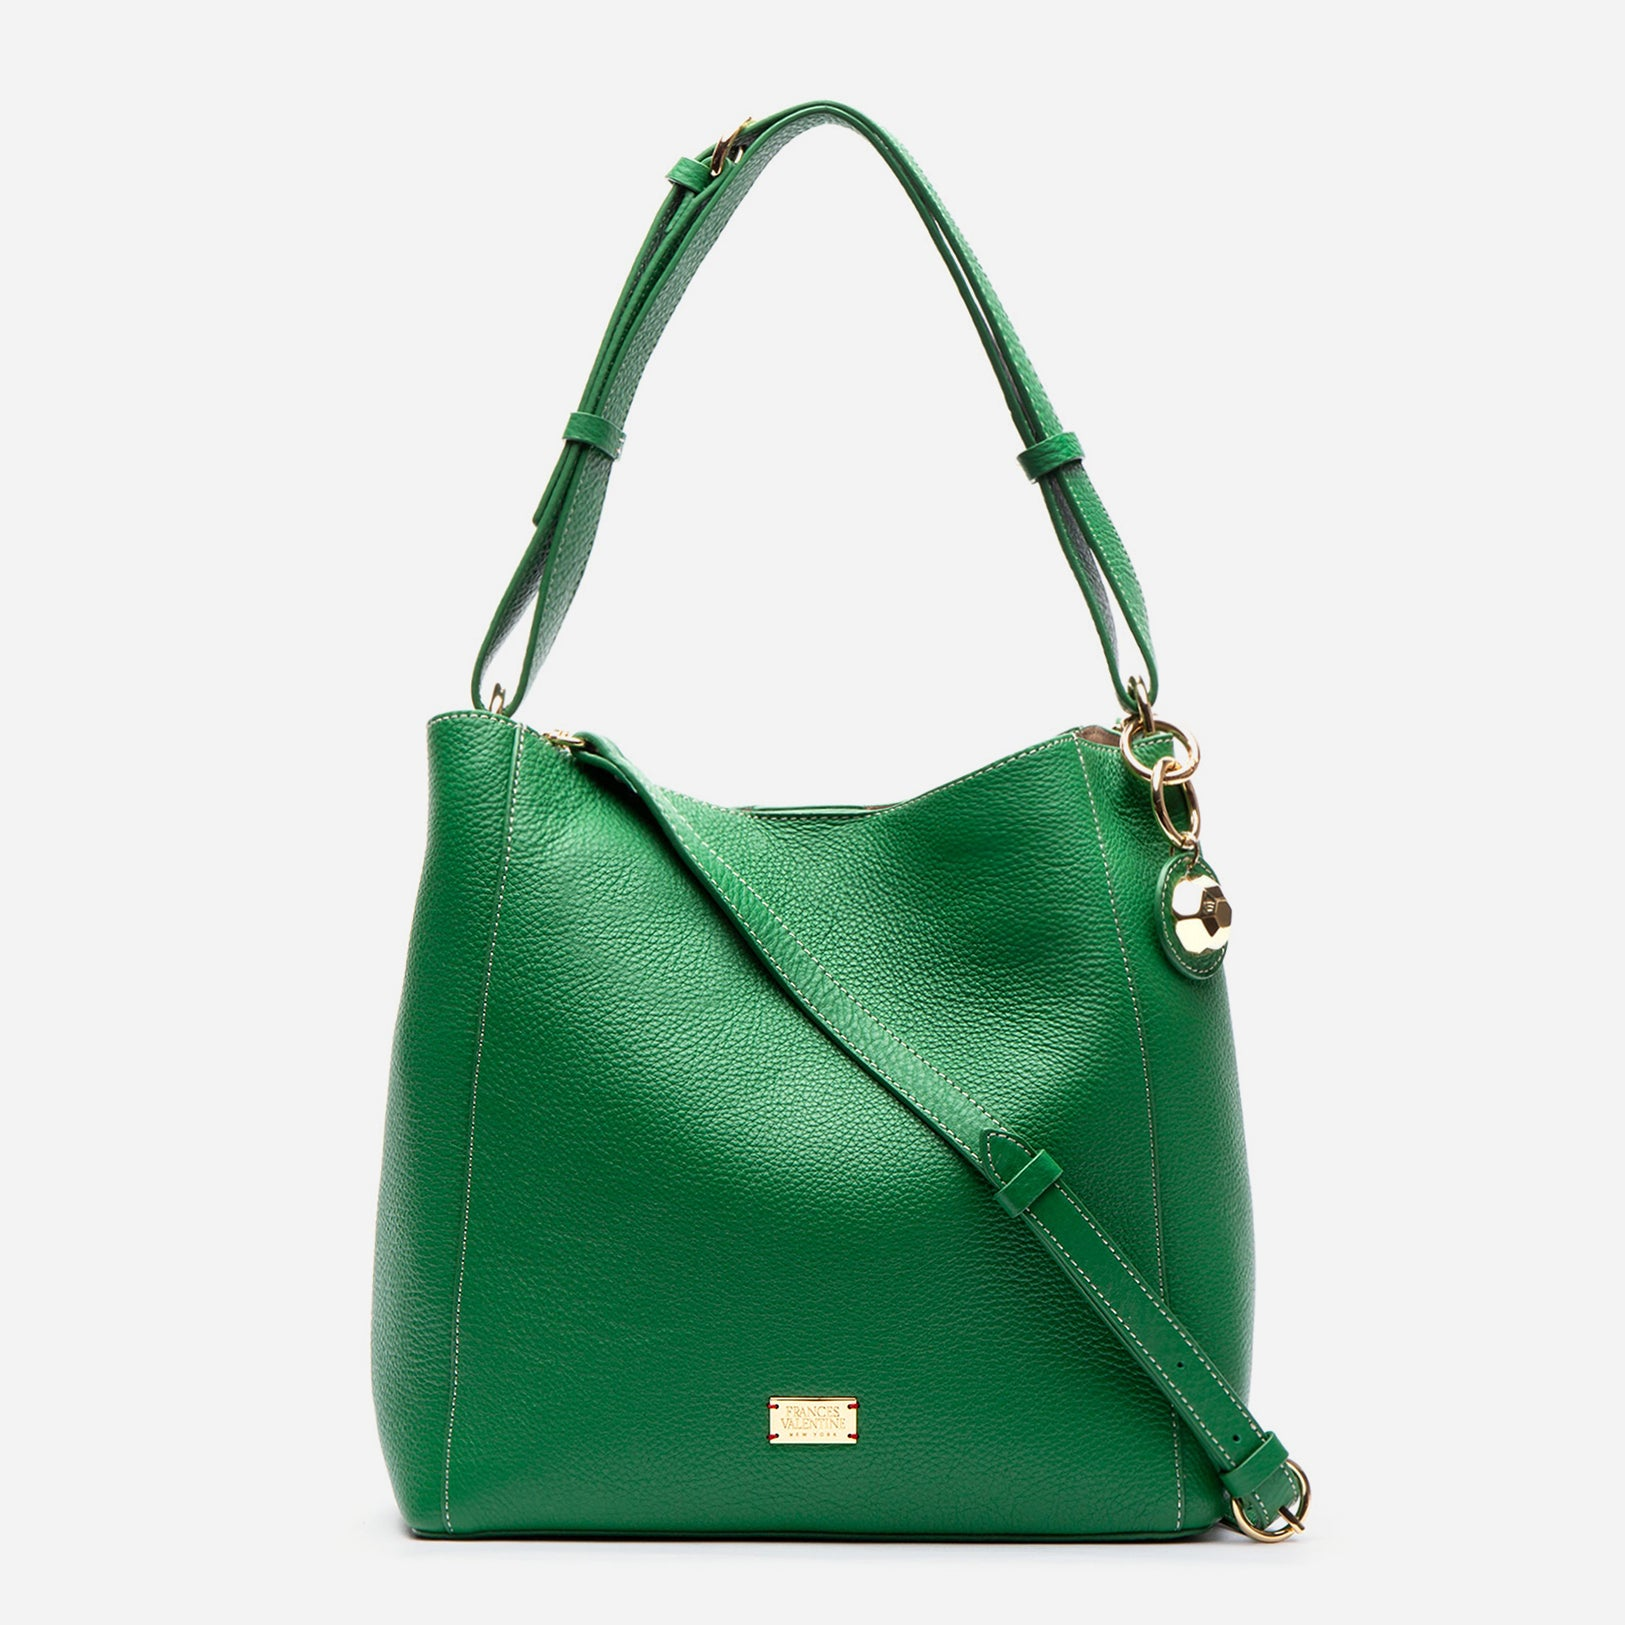 June Hobo Handbag Leather Green